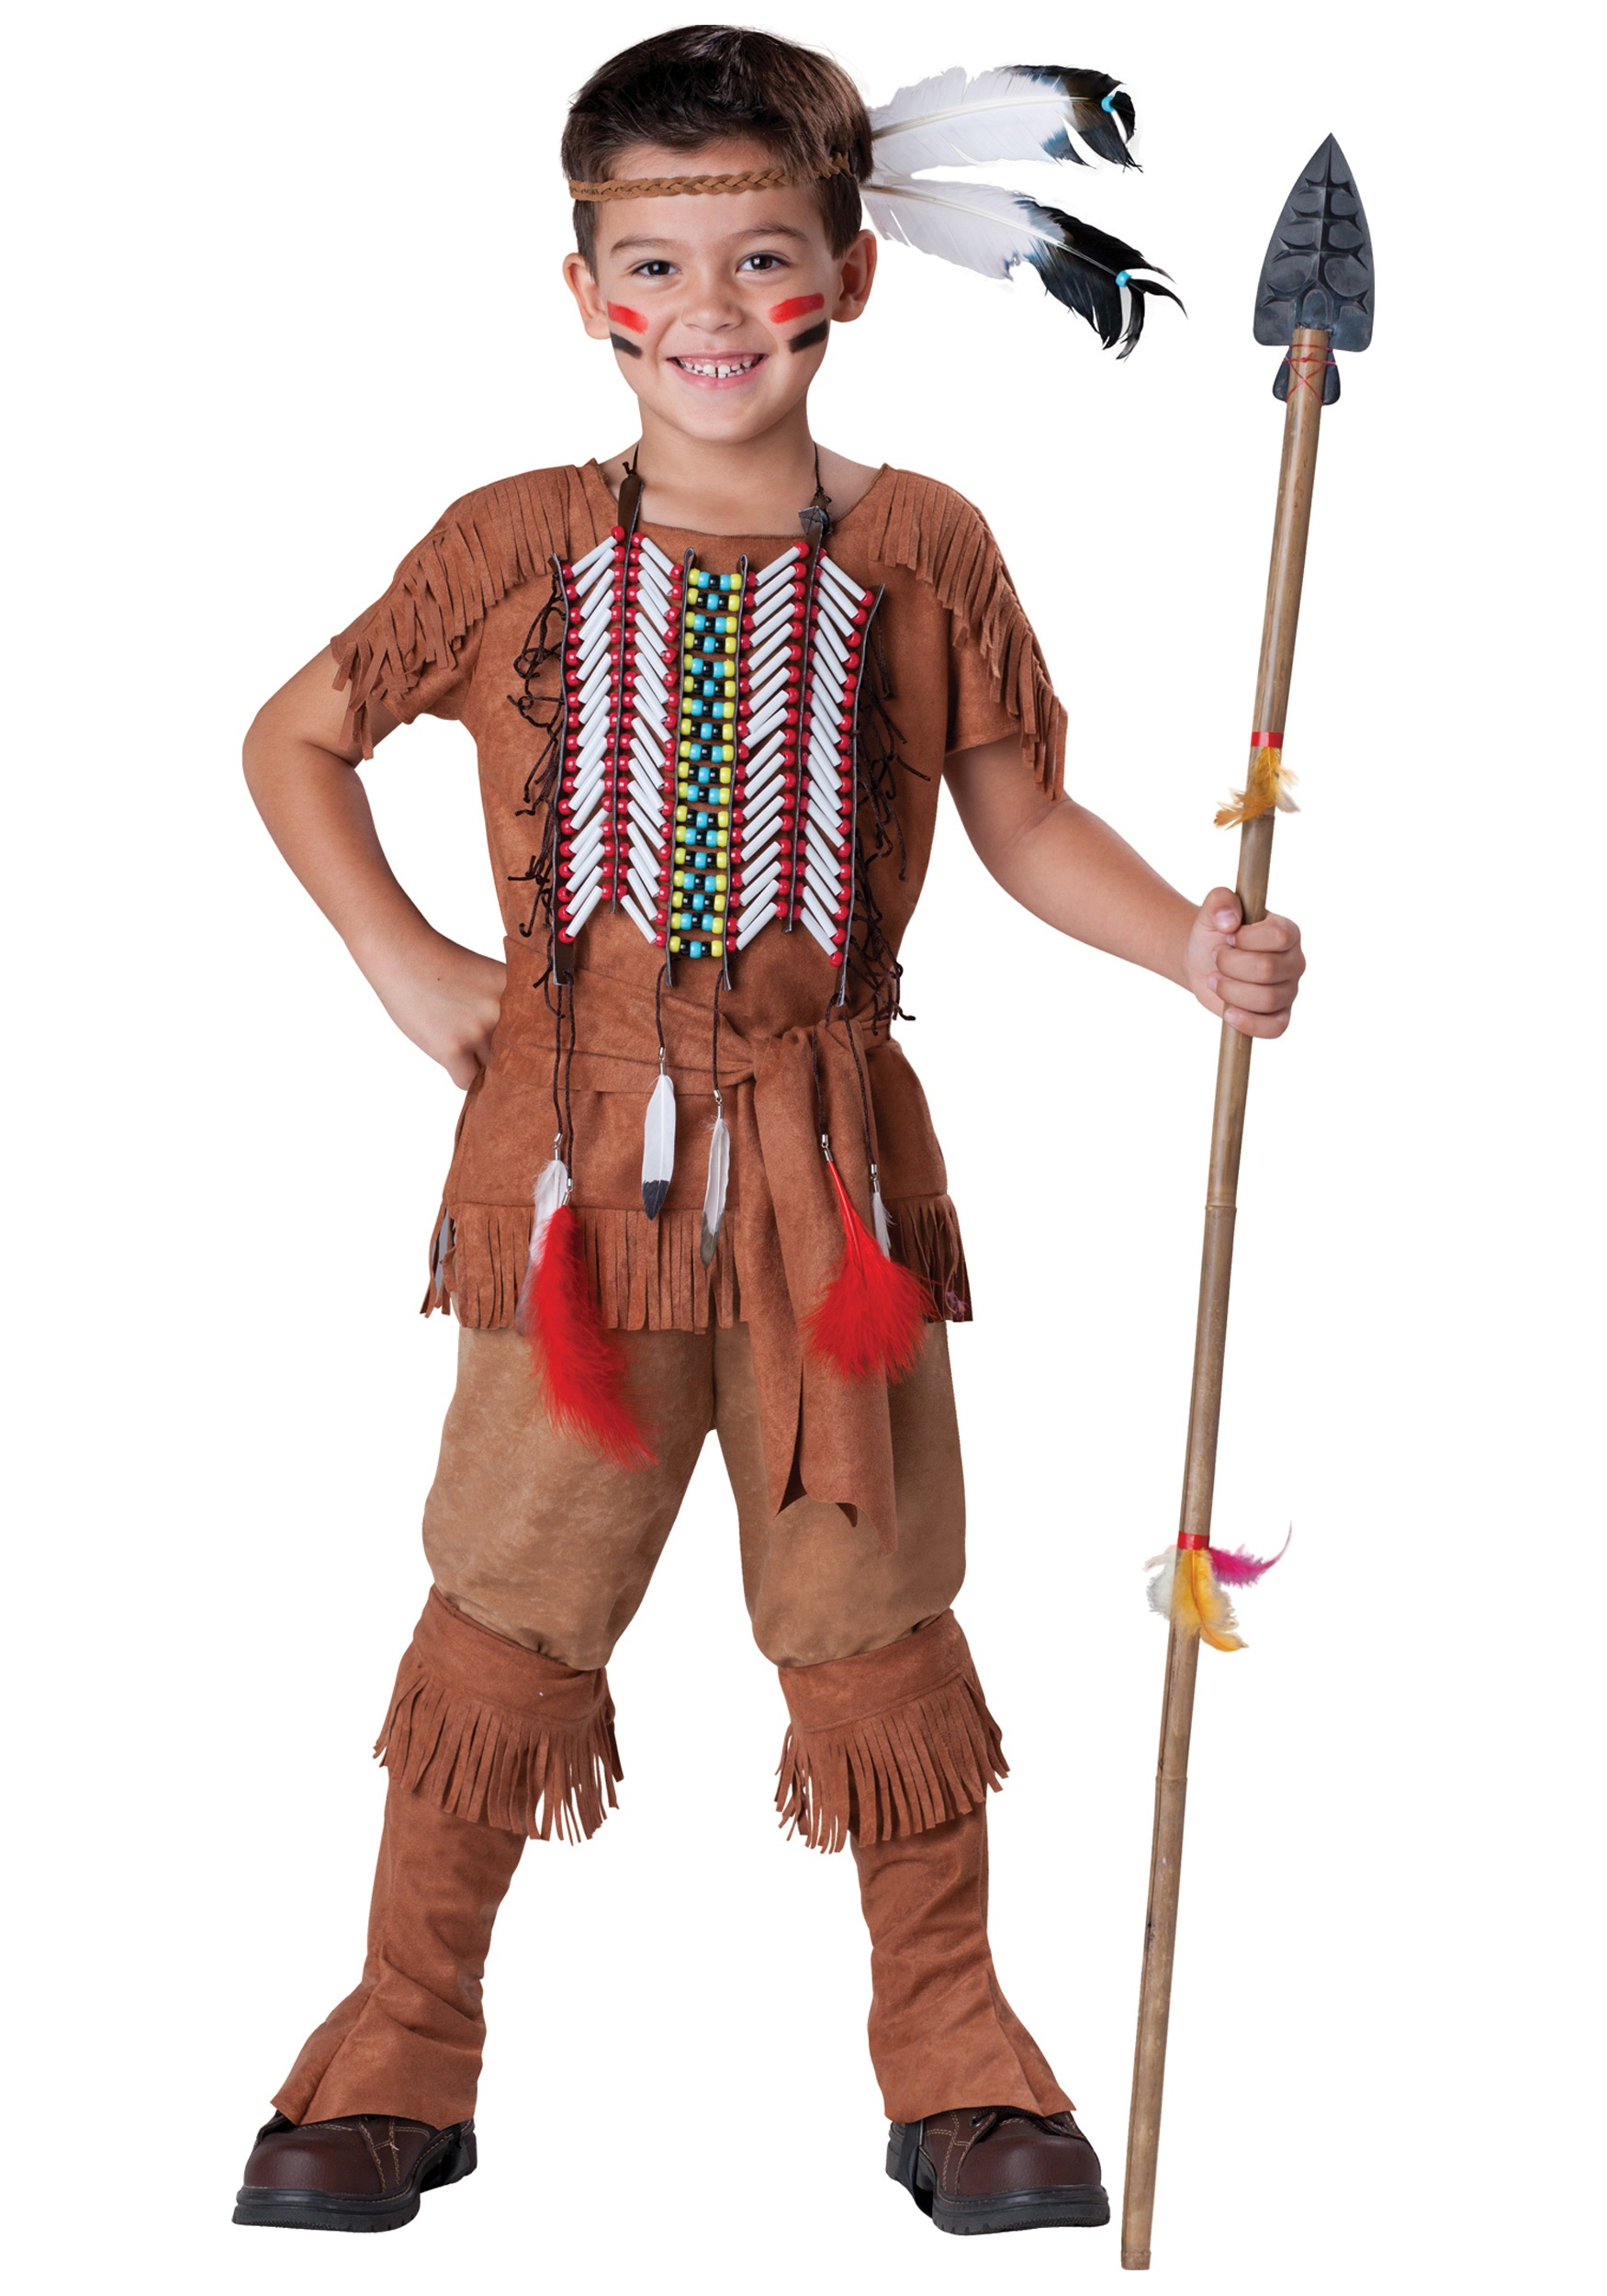 Kids American Indian Brave Costume  sc 1 st  Halloween Costume & Kids American Indian Brave Costume - Boysu0027 American Indian Costume Ideas